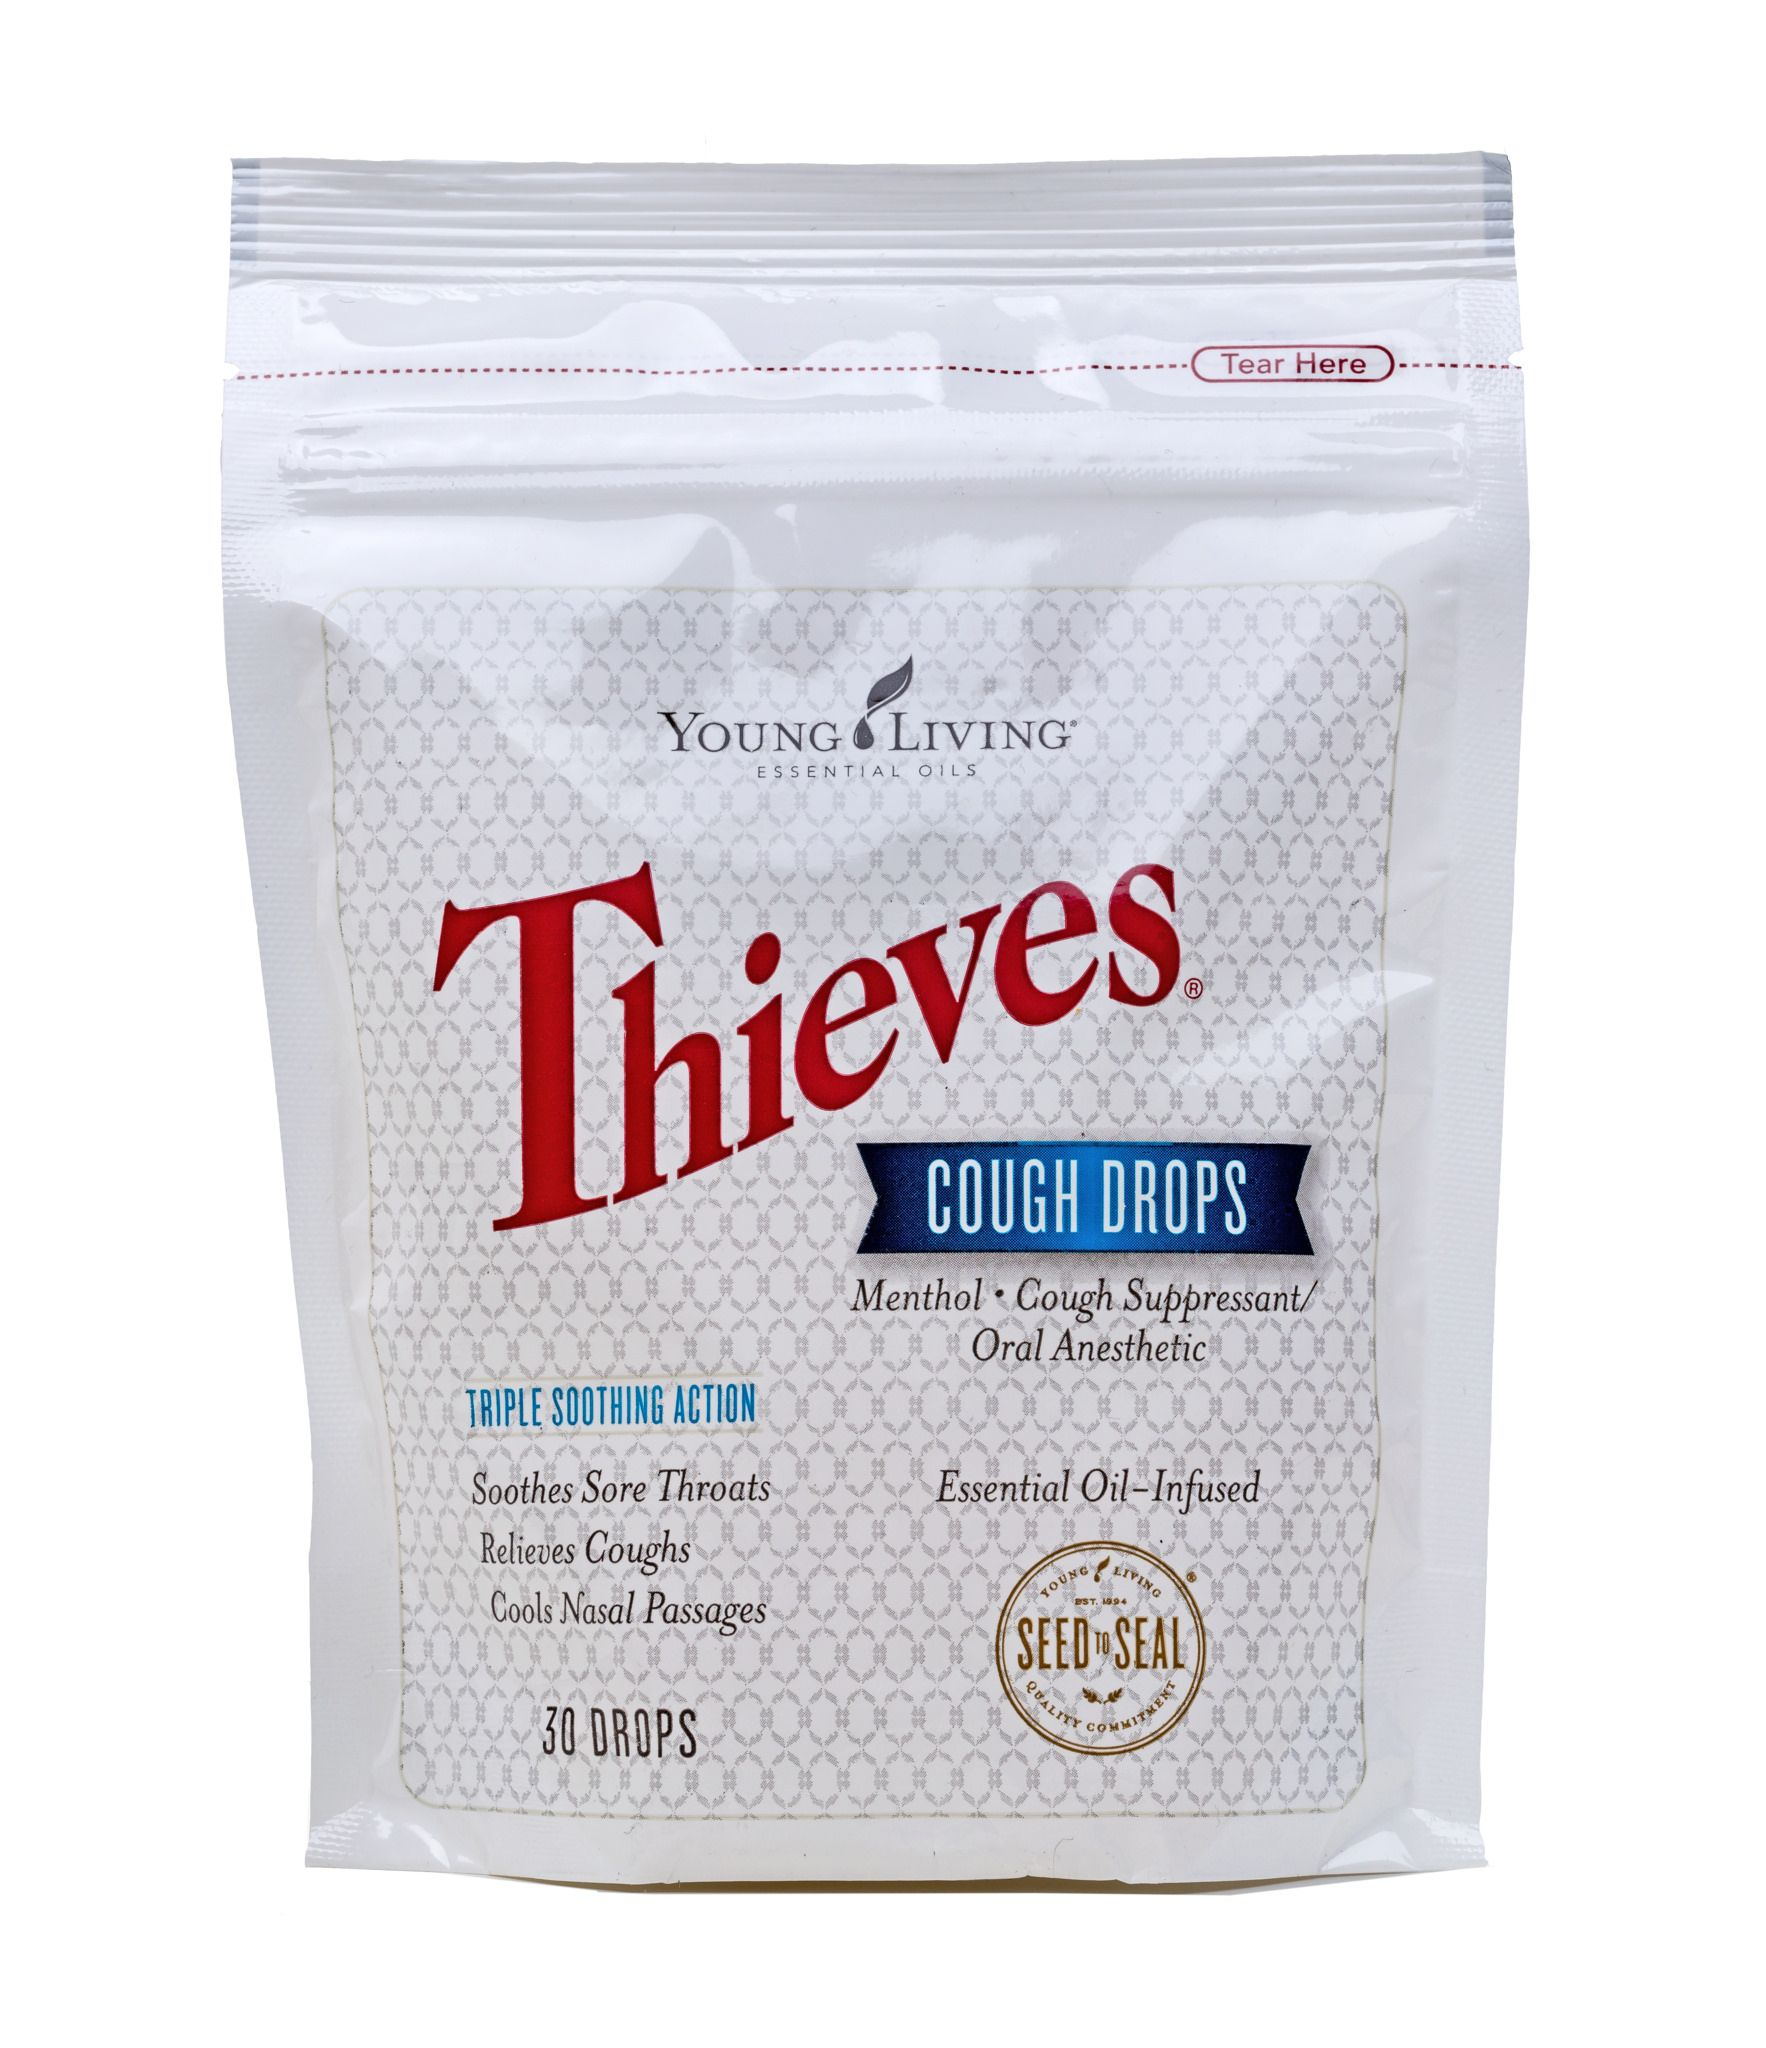 Thieves: The Most Coveted Essential Oil Blend for Centuries ...